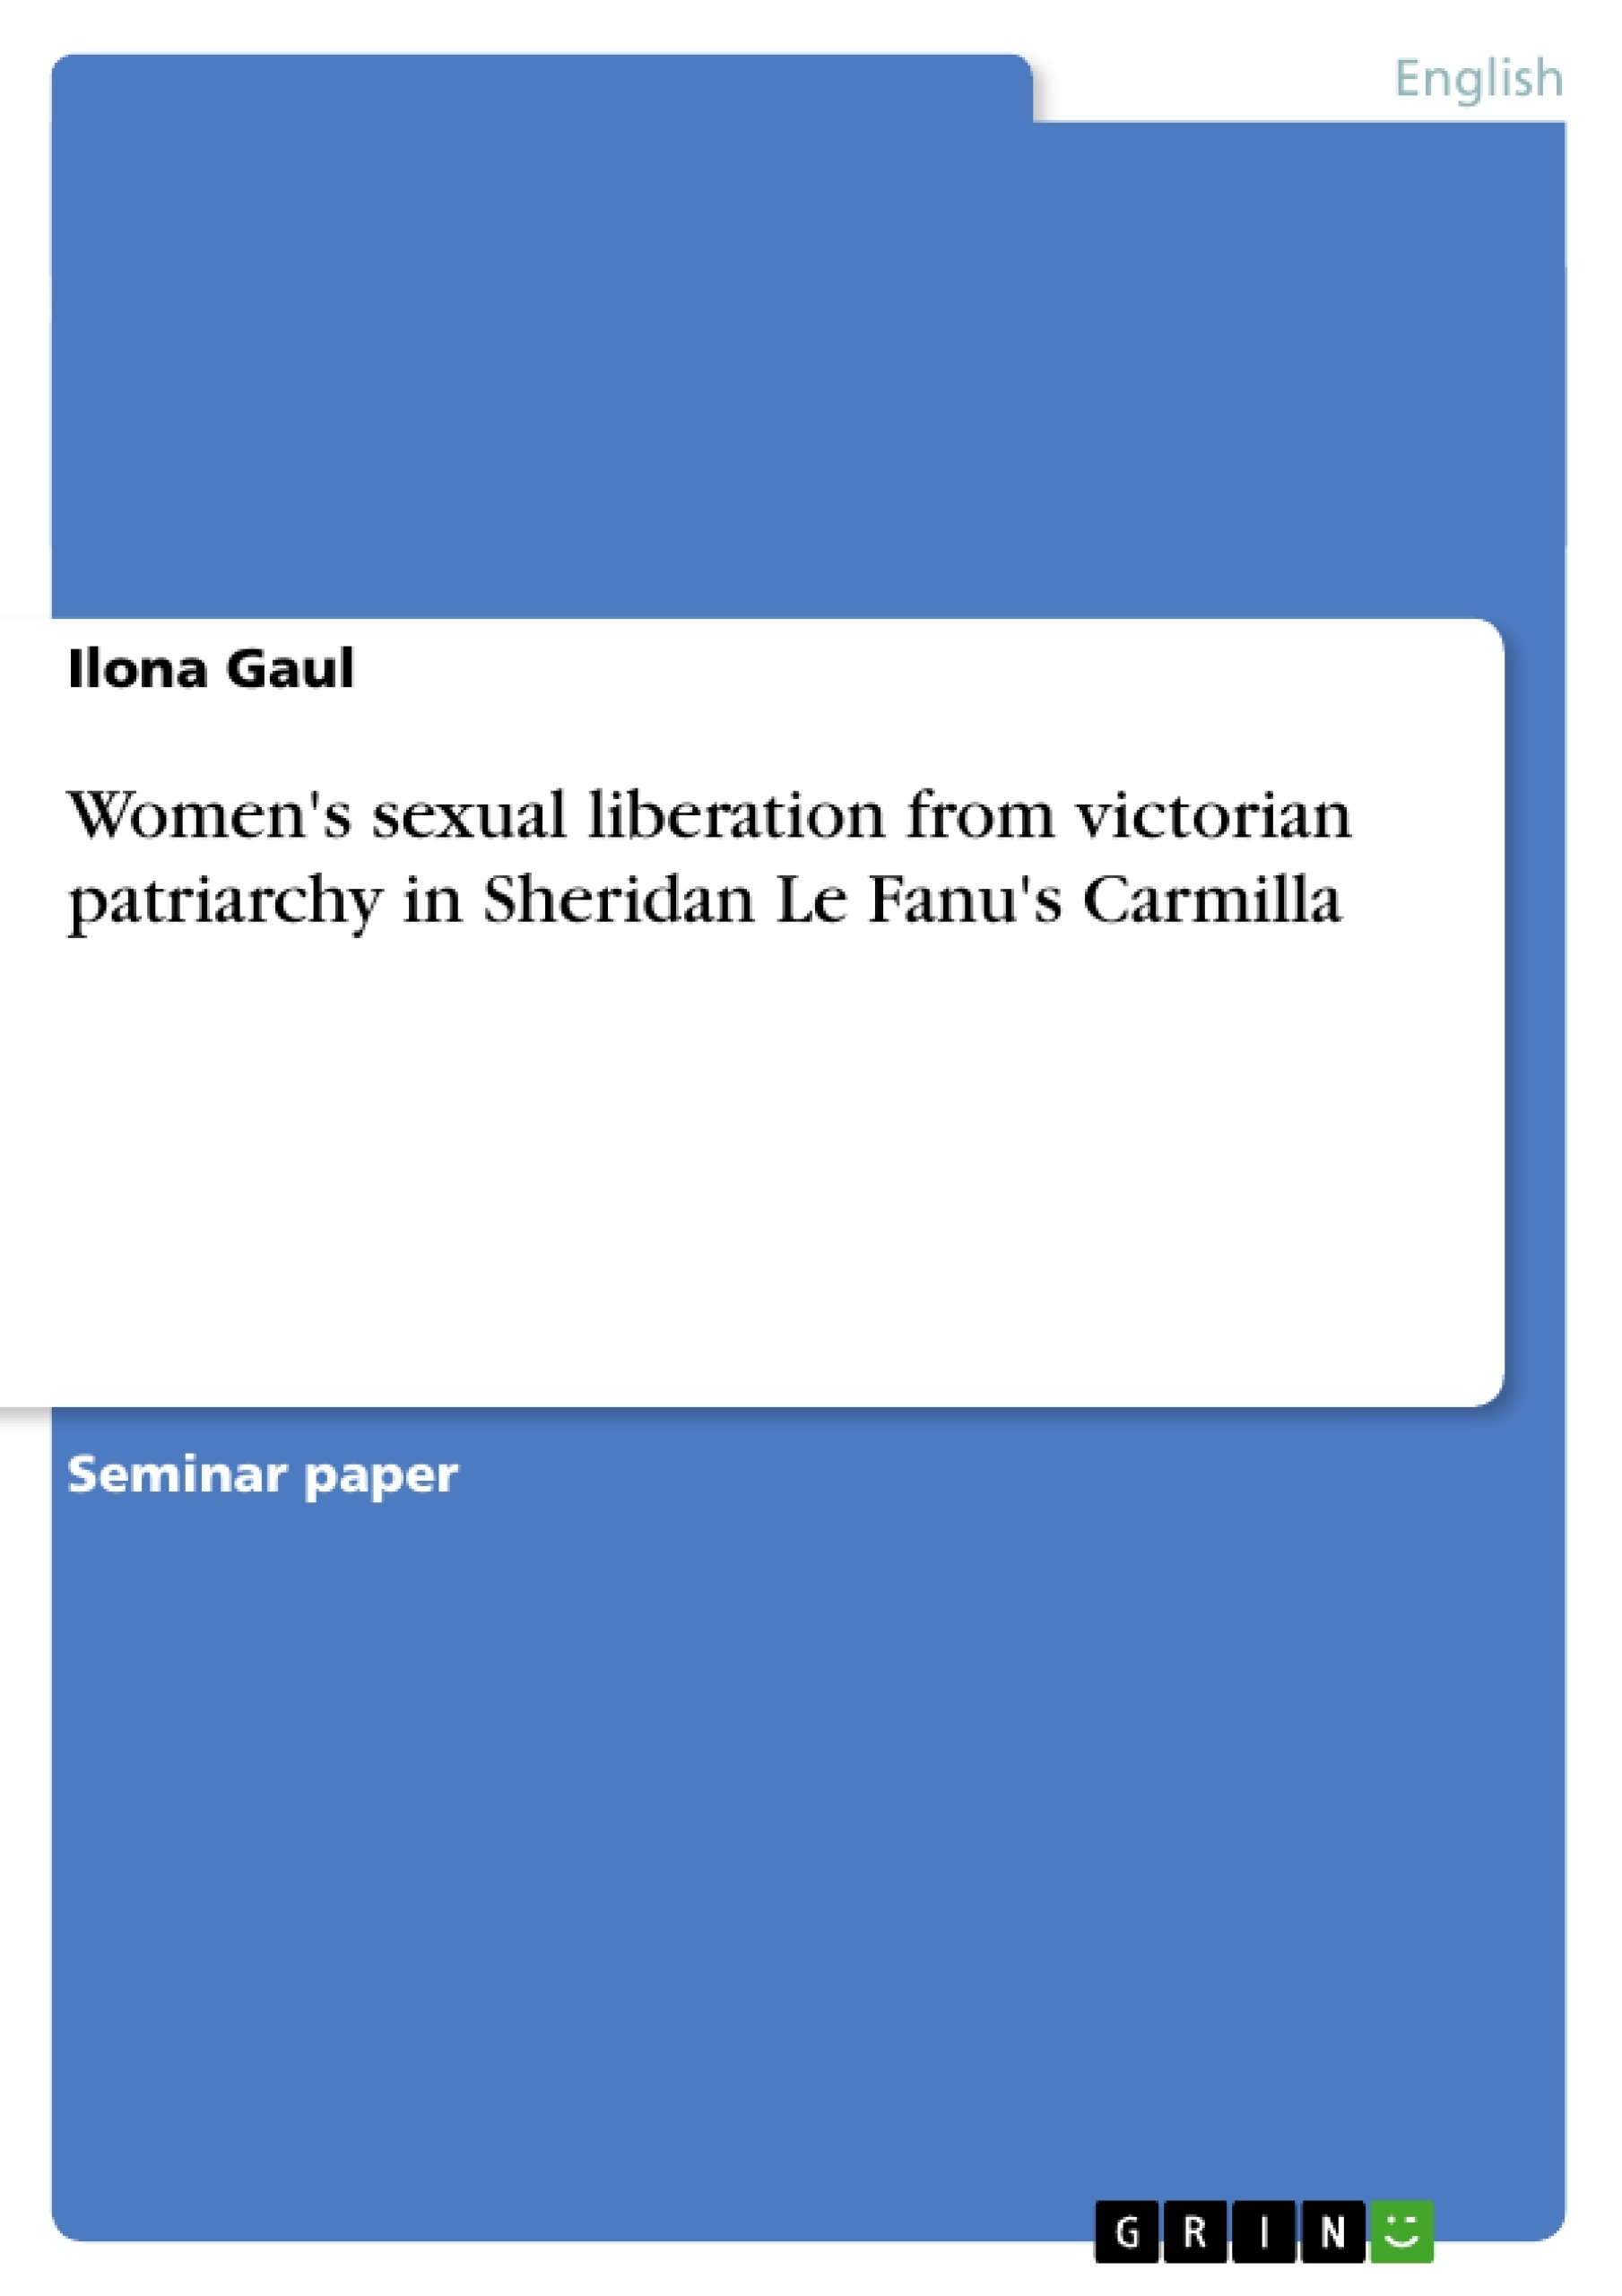 Title: Women's sexual liberation from victorian patriarchy in Sheridan Le Fanu's Carmilla